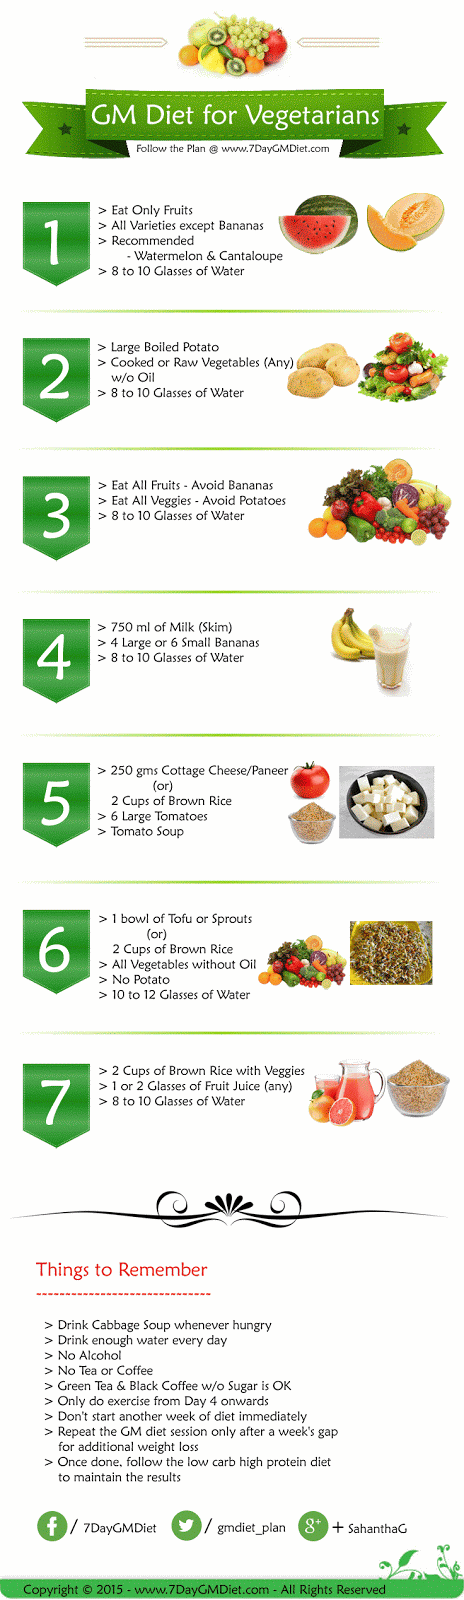 Vegetarian GM Diet Plan